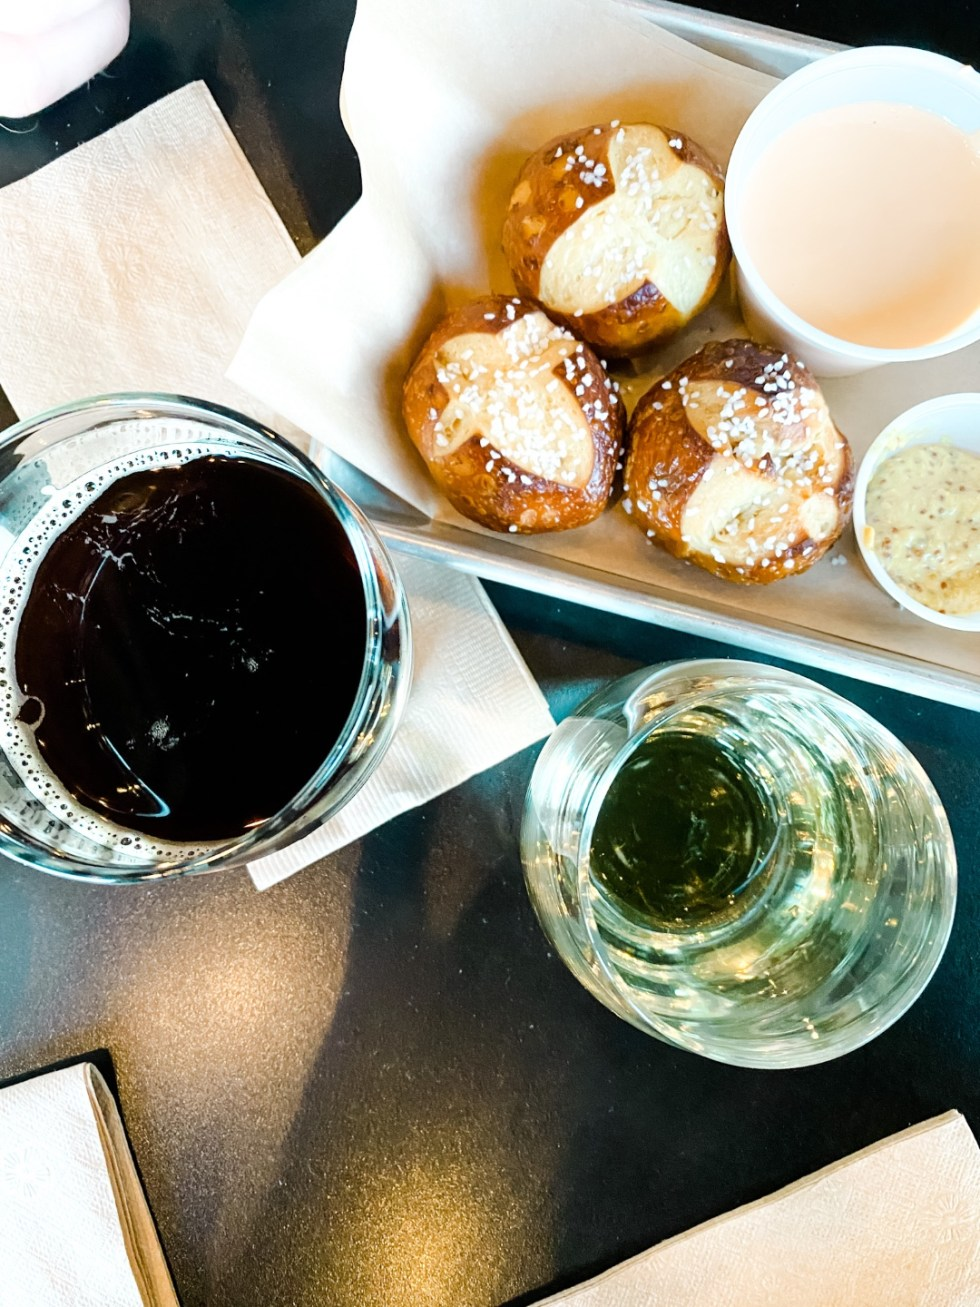 Christmas in Asheville: a Weekend Getaway During the Holidays - I'm Fixin' To - @imfixintoblog |Christmas in Asheville NC by popular NC lifestyle blog, I'm Fixin' To: image of beer and pretzel bites at Hillman Beer.